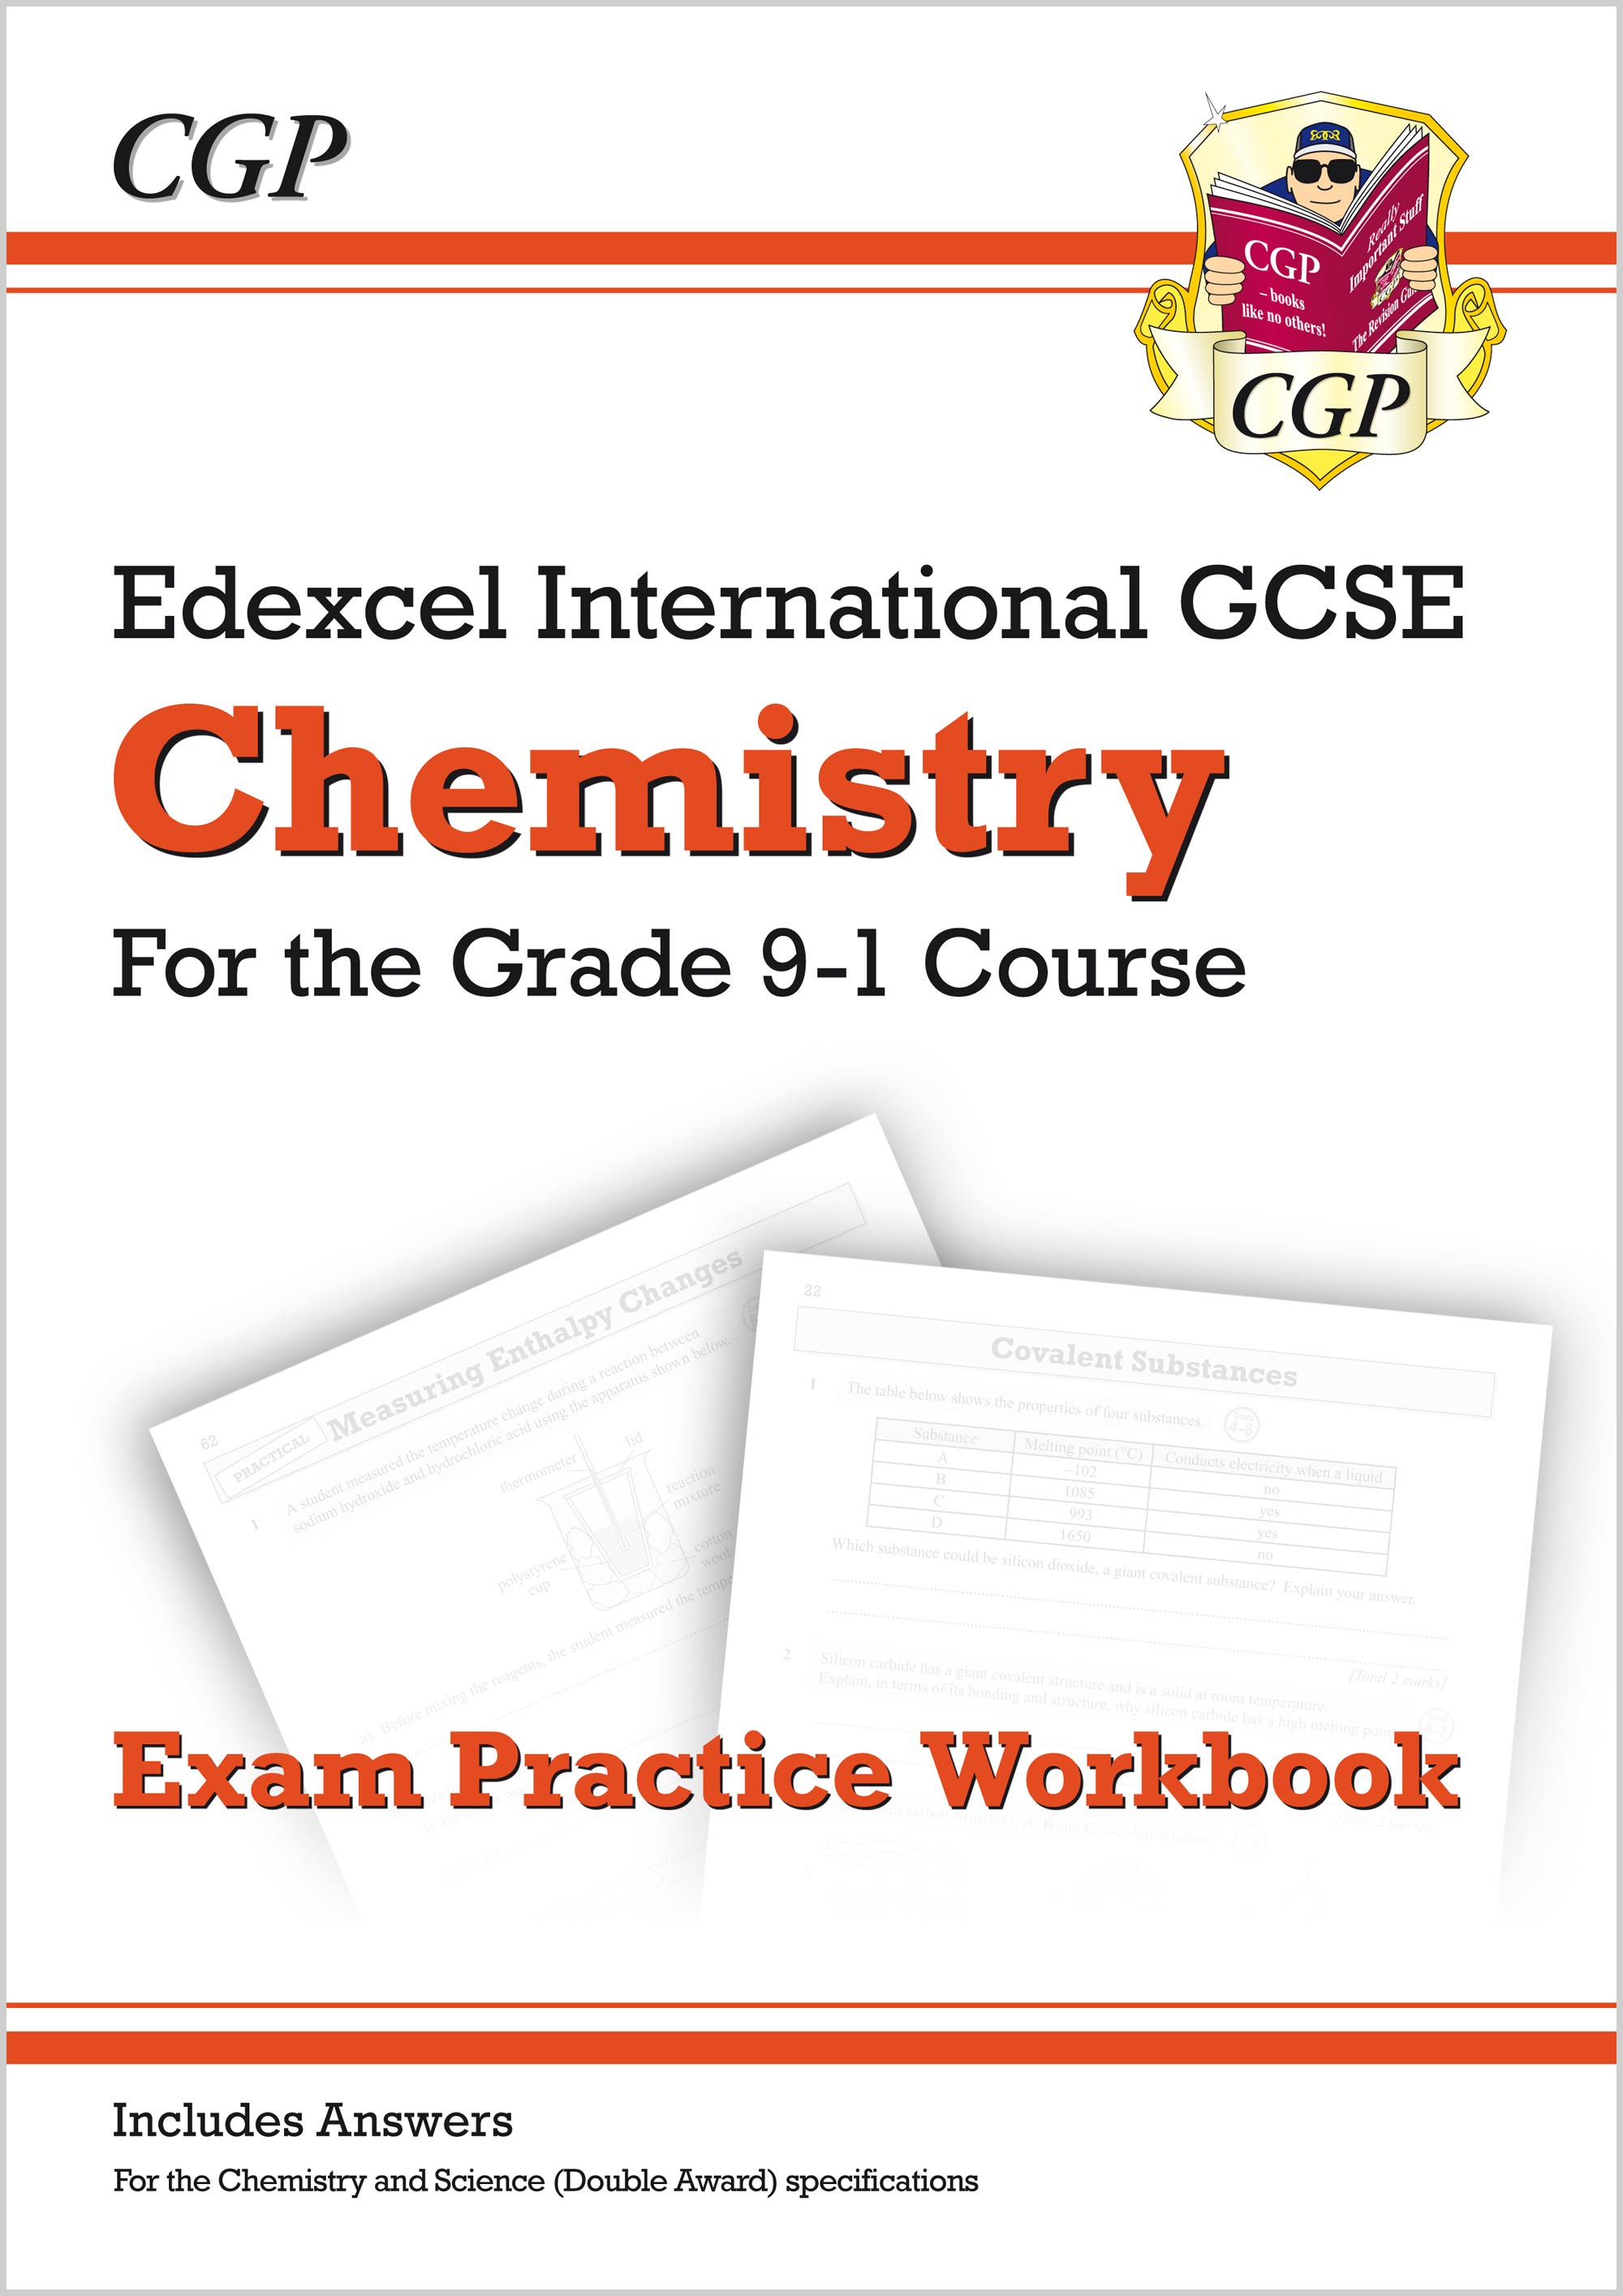 CEQI42 - Grade 9-1 Edexcel International GCSE Chemistry: Exam Practice Workbook (includes Answers)